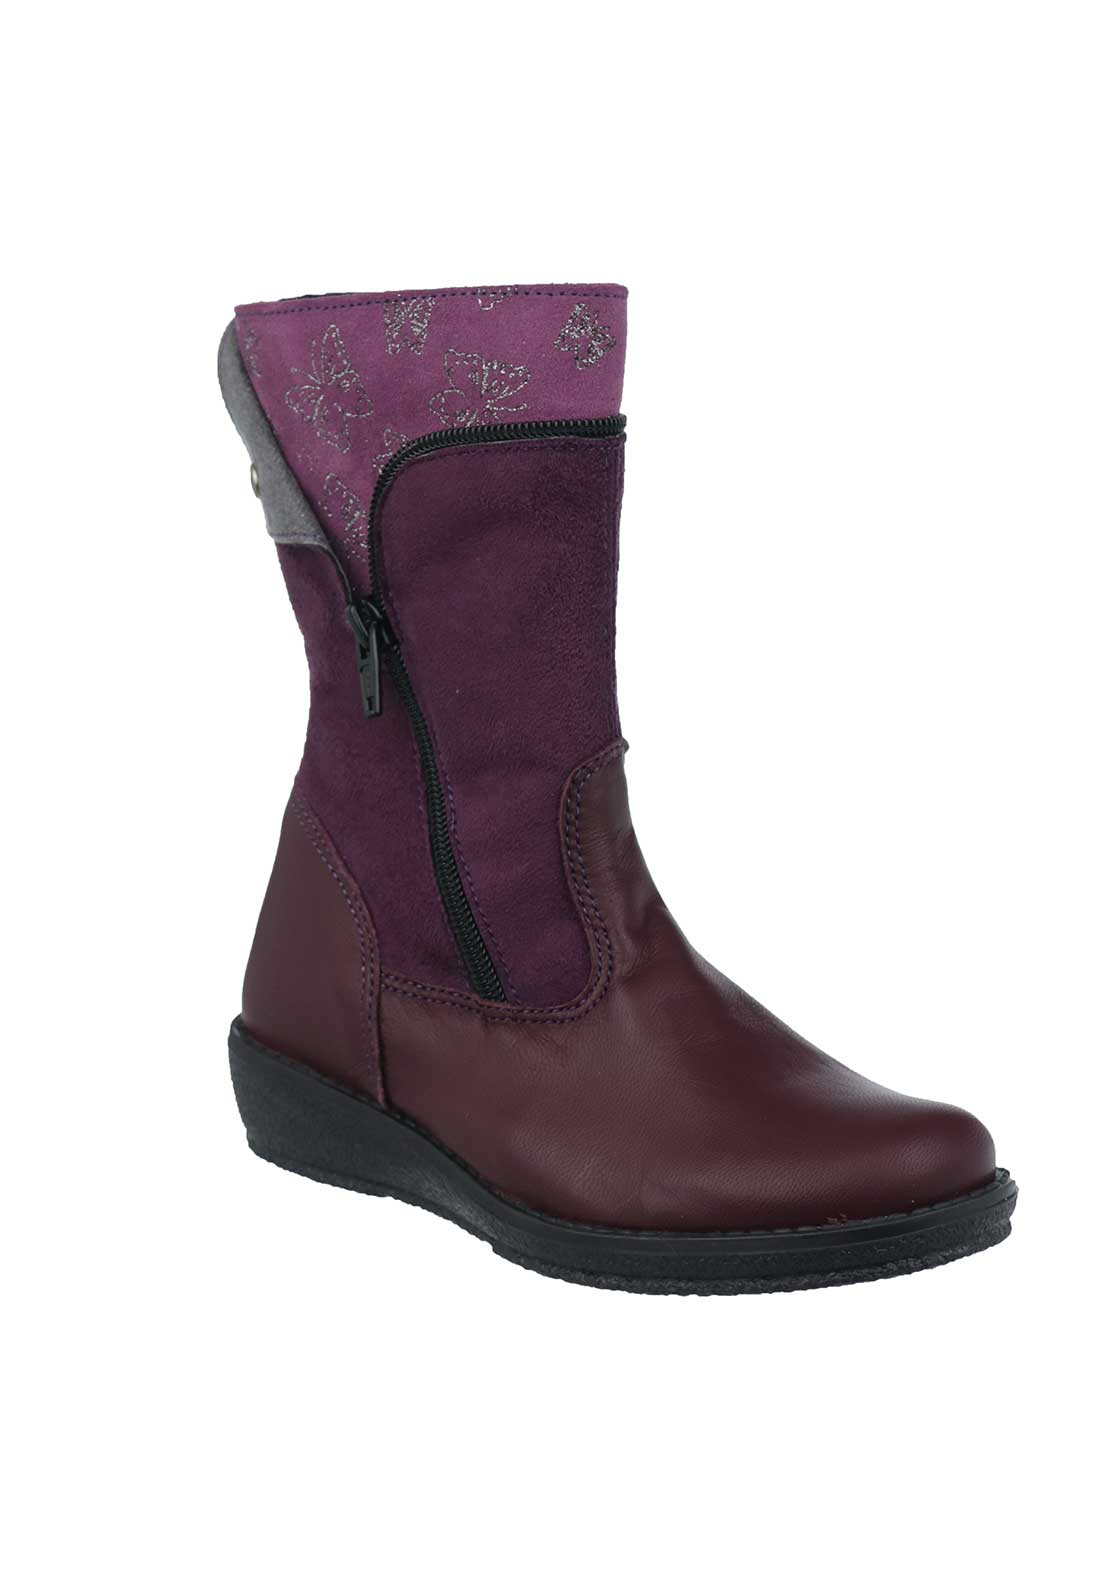 Dubarry Girls Tillie Leather Boots, Purple